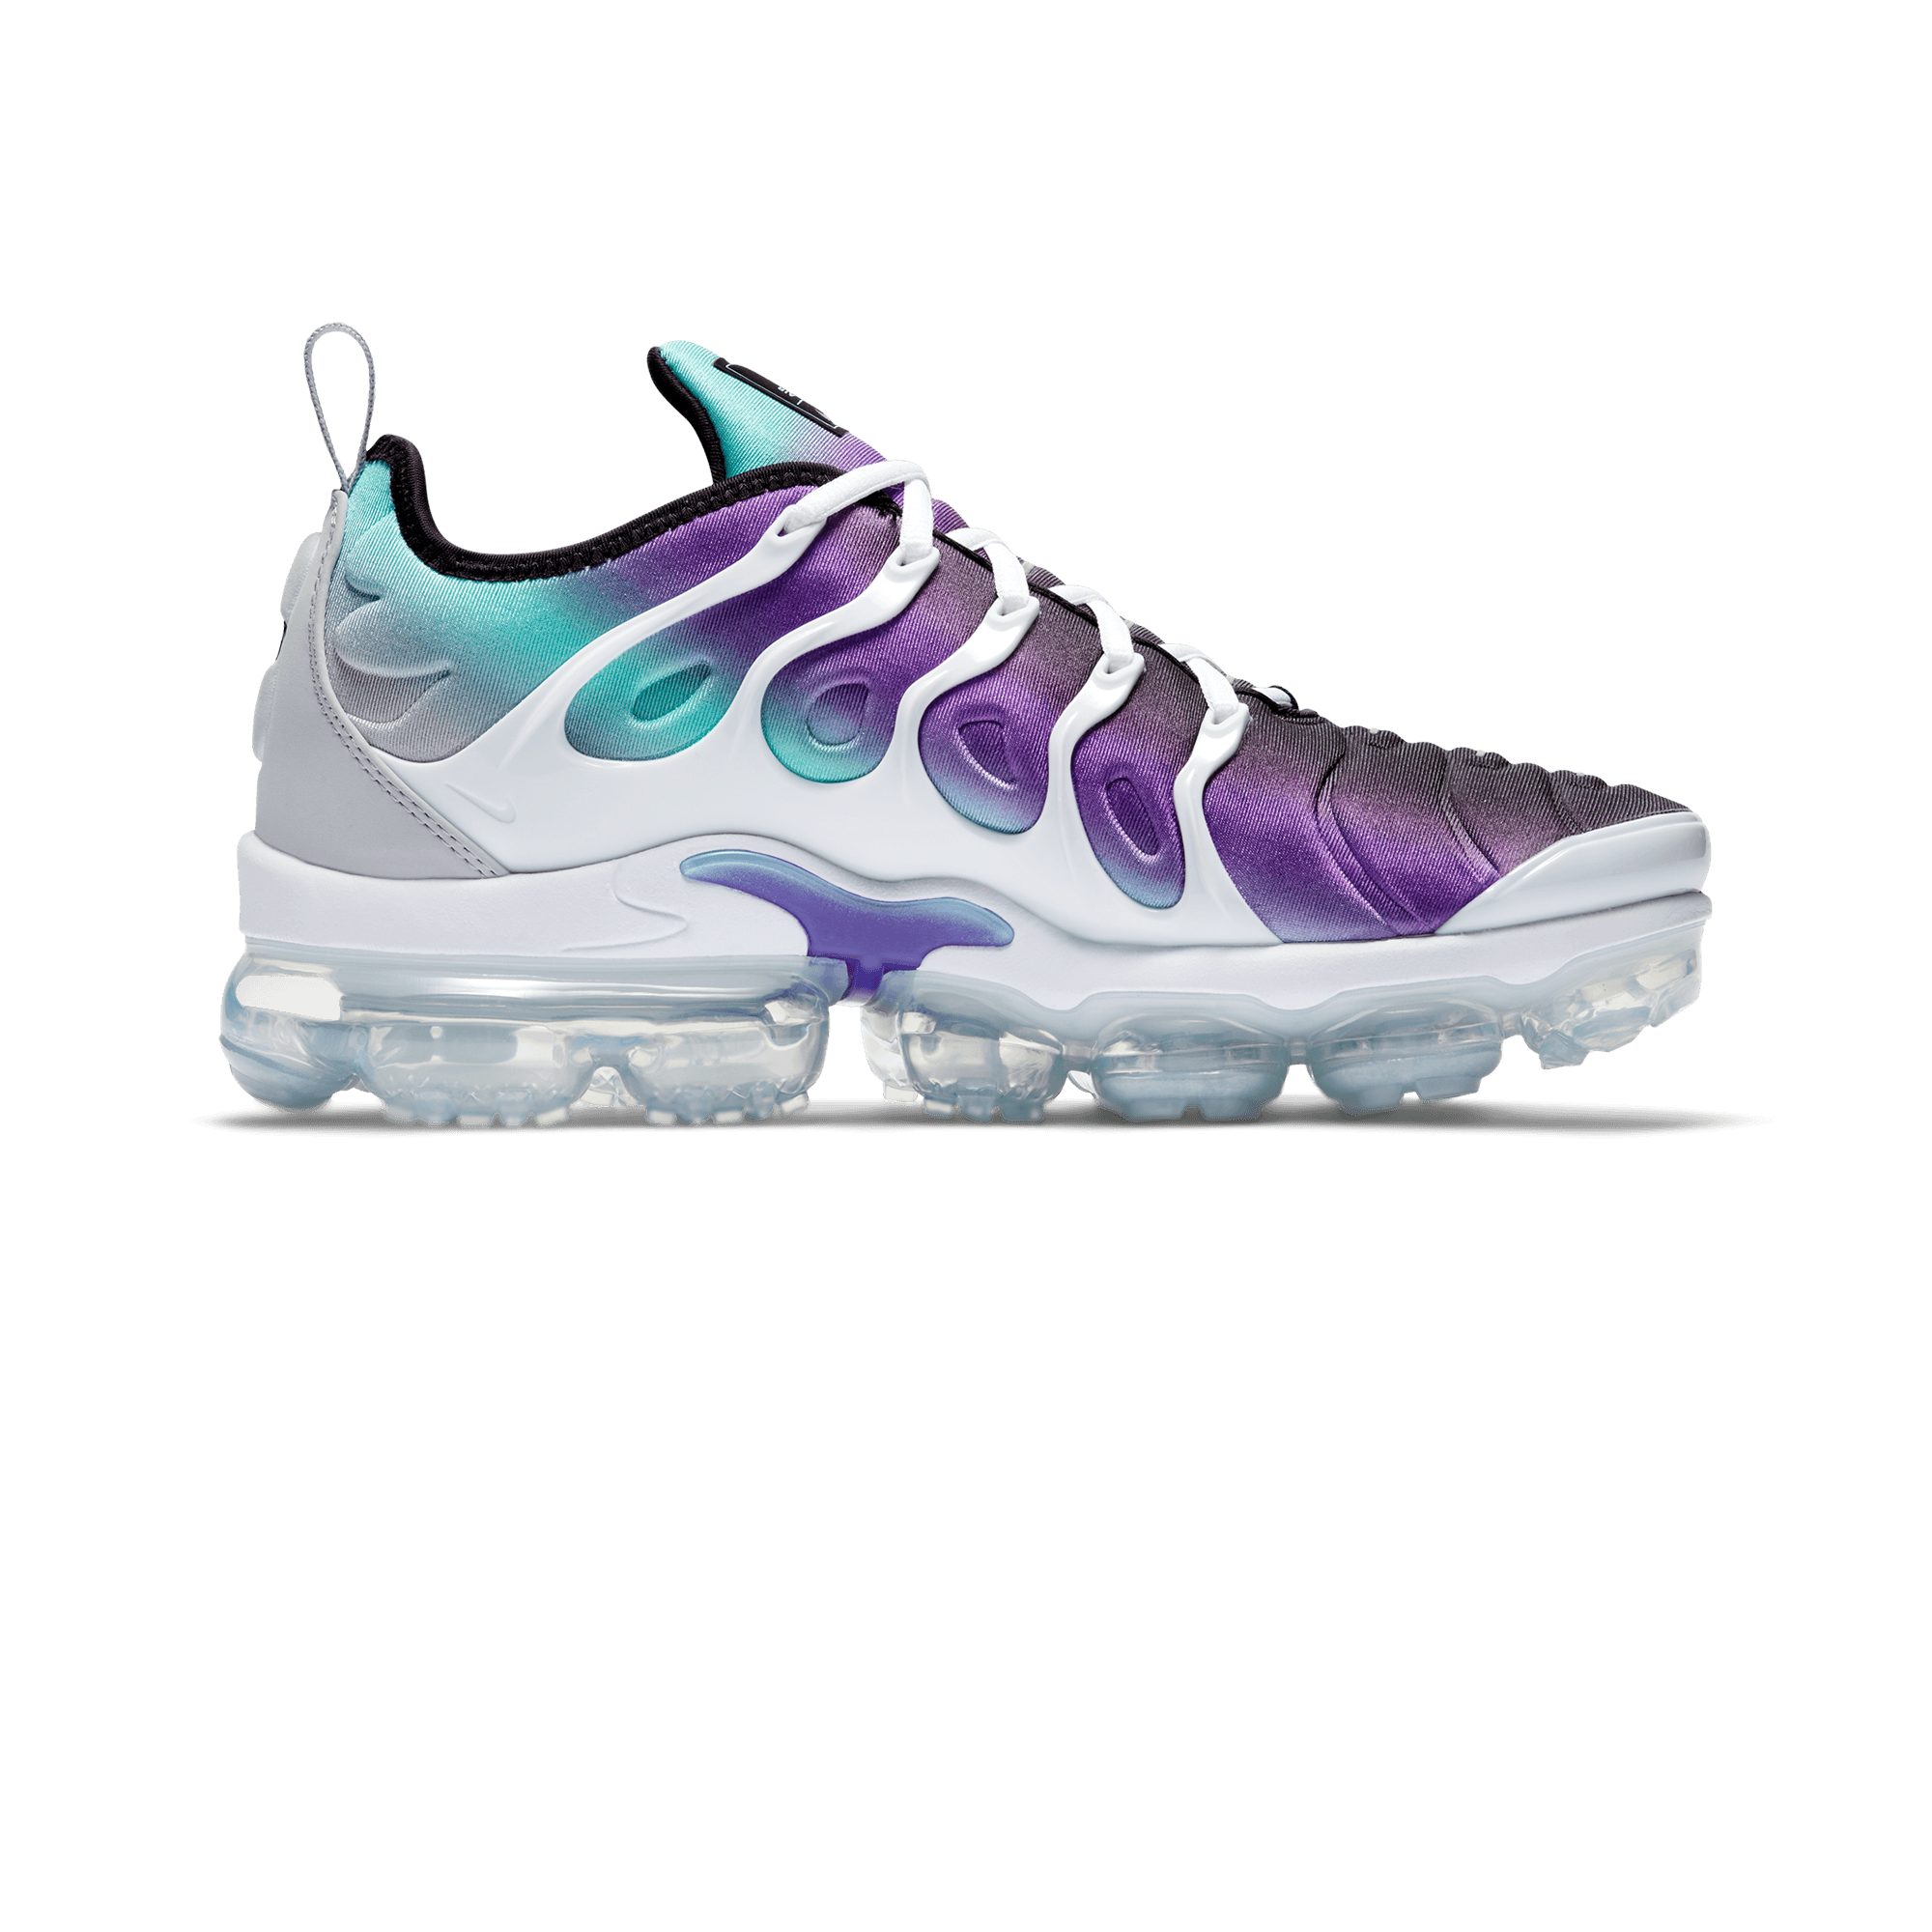 innovative design fa132 2591d Nike Air Vapormax Plus white / fierce purple / aurora green - Men |  Holypopstore.com